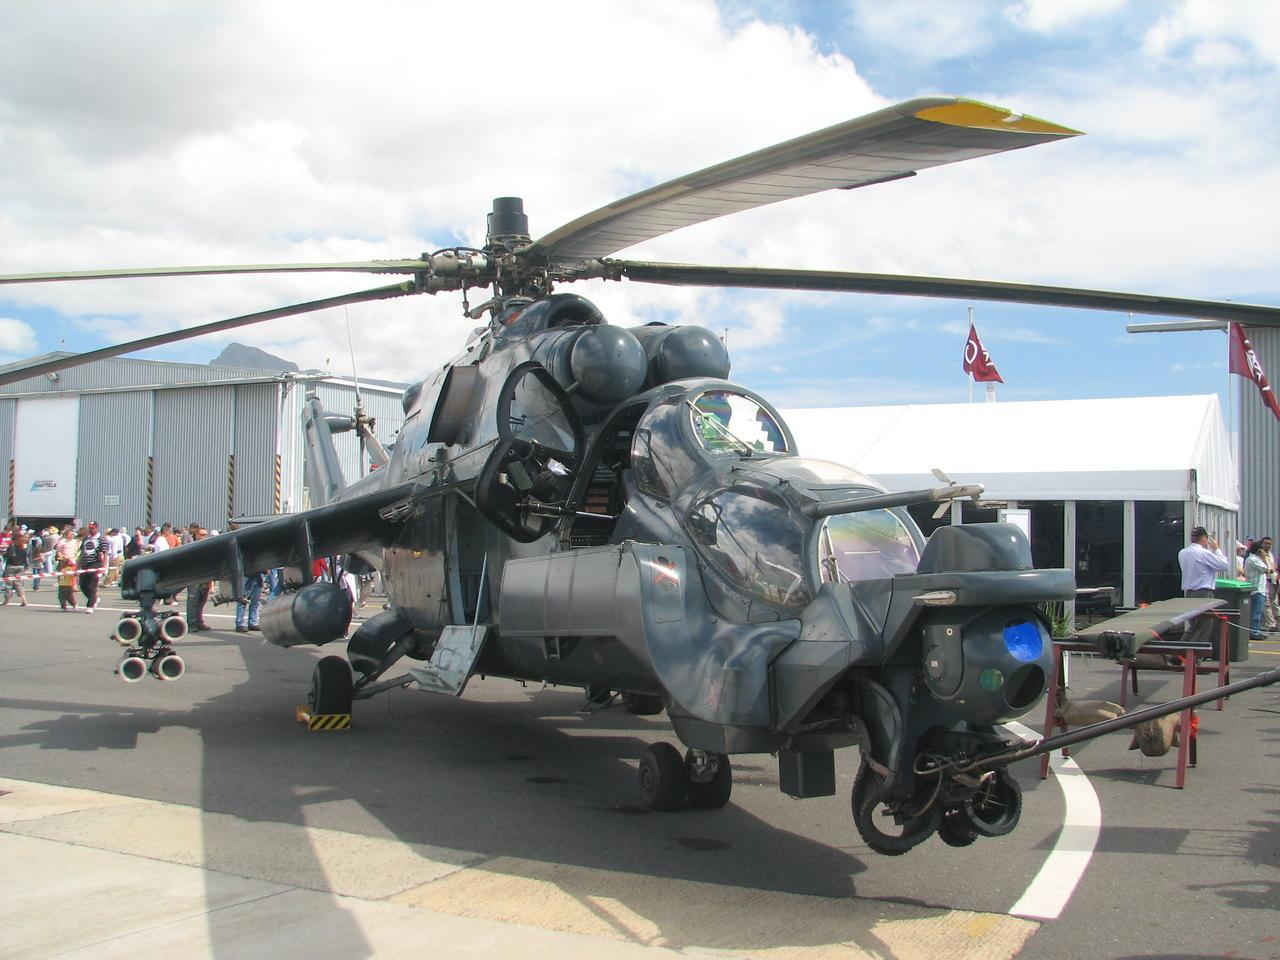 Mi-24_Super_Agile_Hind_on_ground_2006.jpg